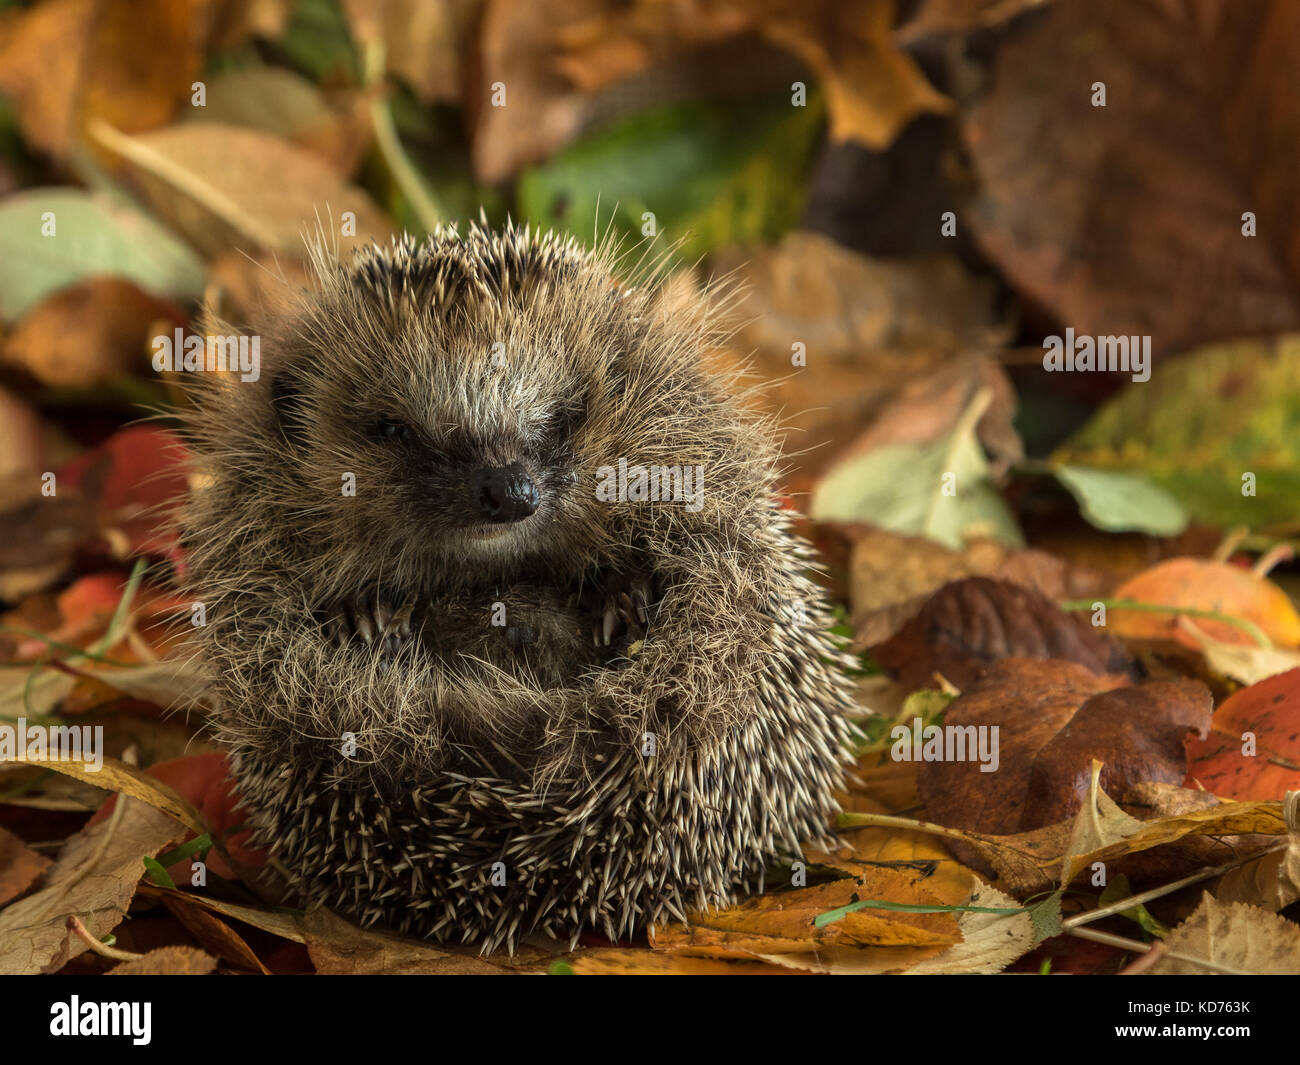 hedgehog curled up in autumn leaves - Stock Image